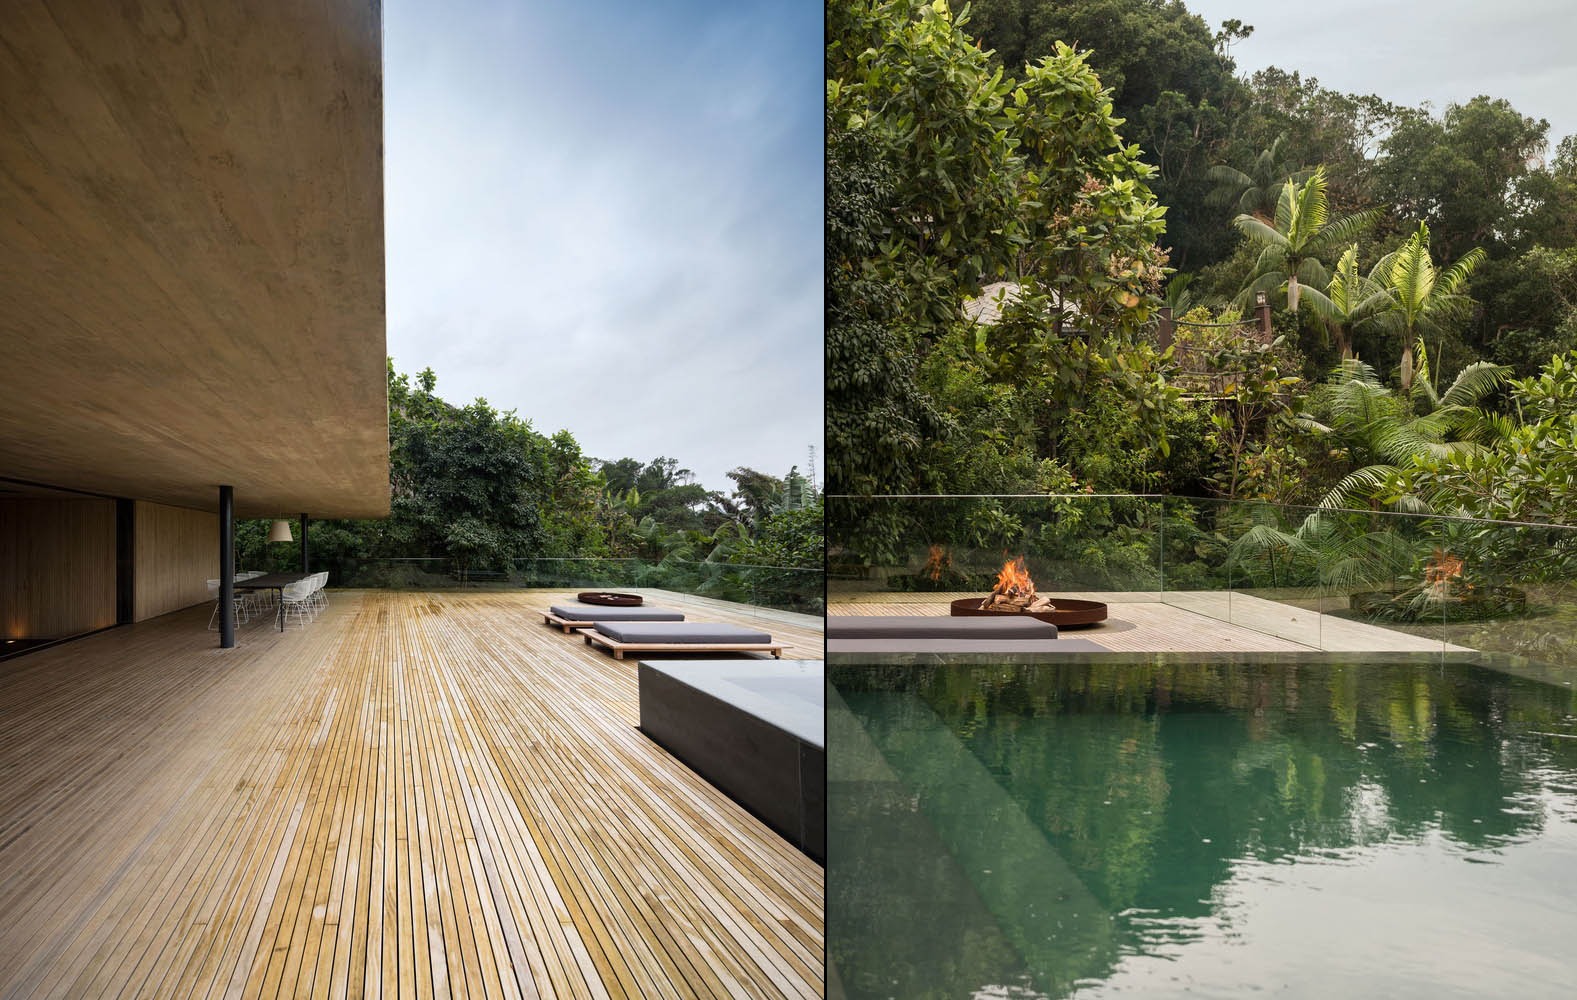 mm_Jungle House  design by Studiomk27 - Marcio Kogan + Samanta Cafardo_15